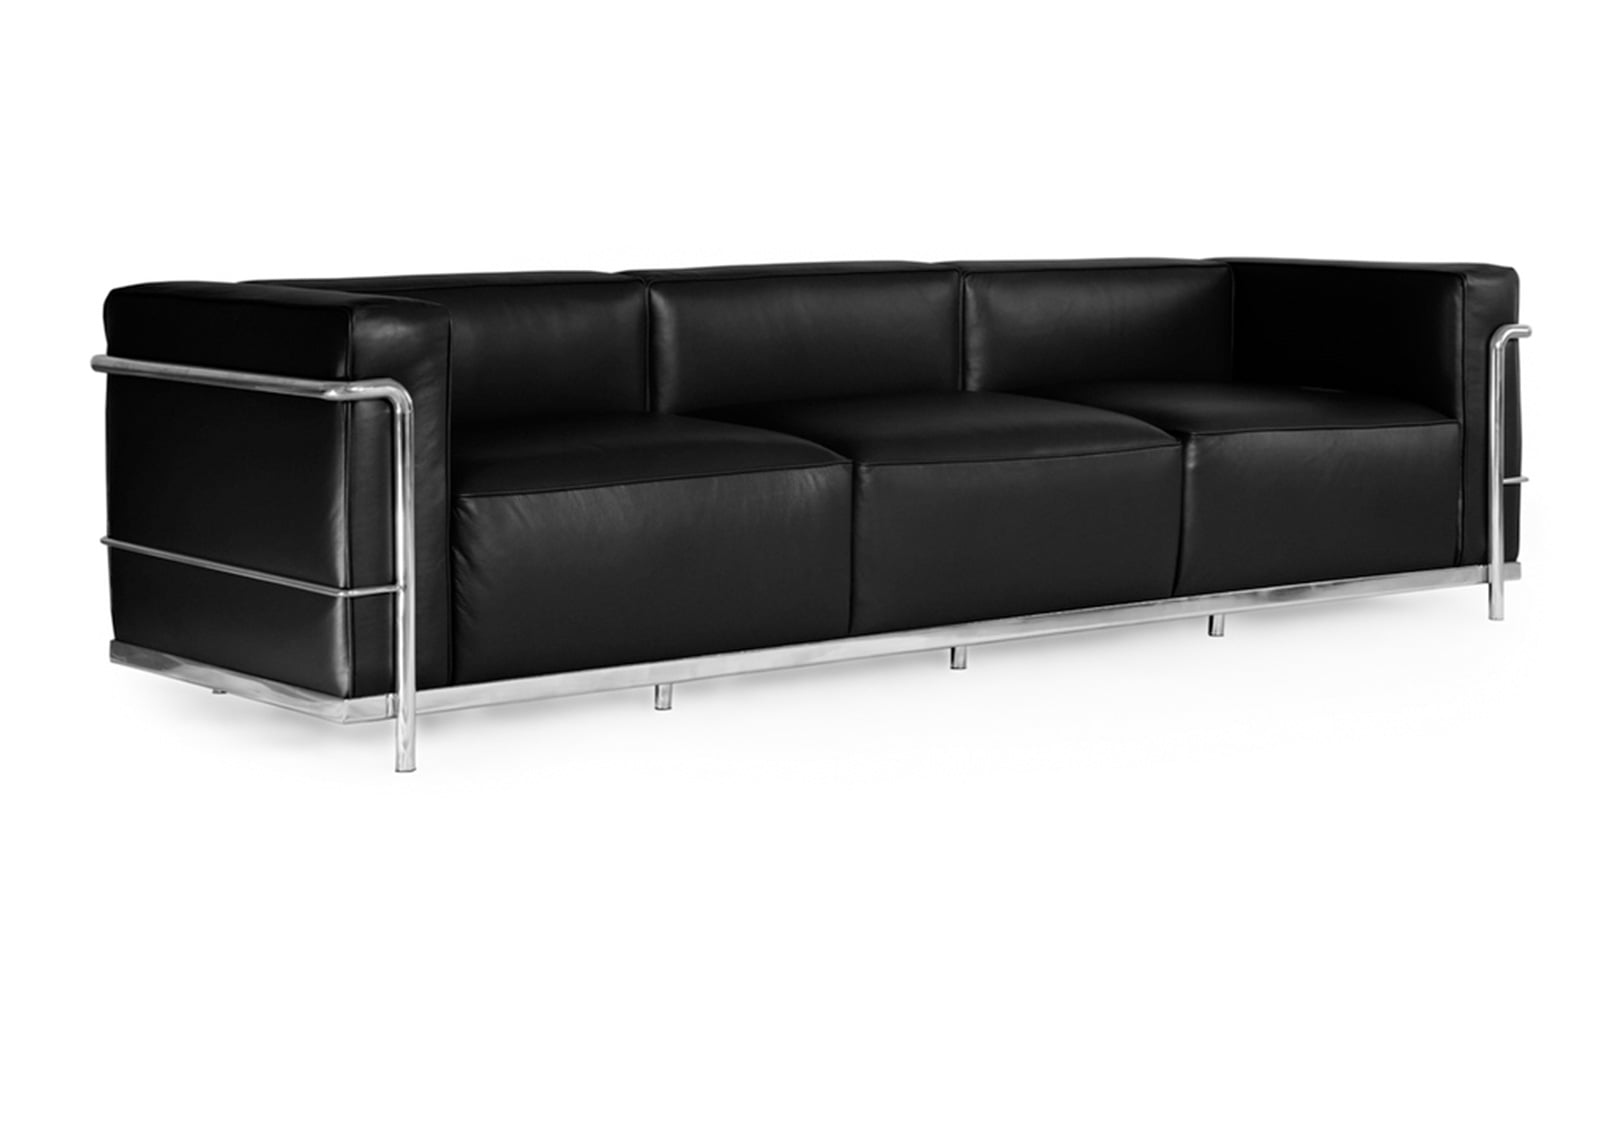 le corbusier reproduction lc3 sofa furnishplus. Black Bedroom Furniture Sets. Home Design Ideas